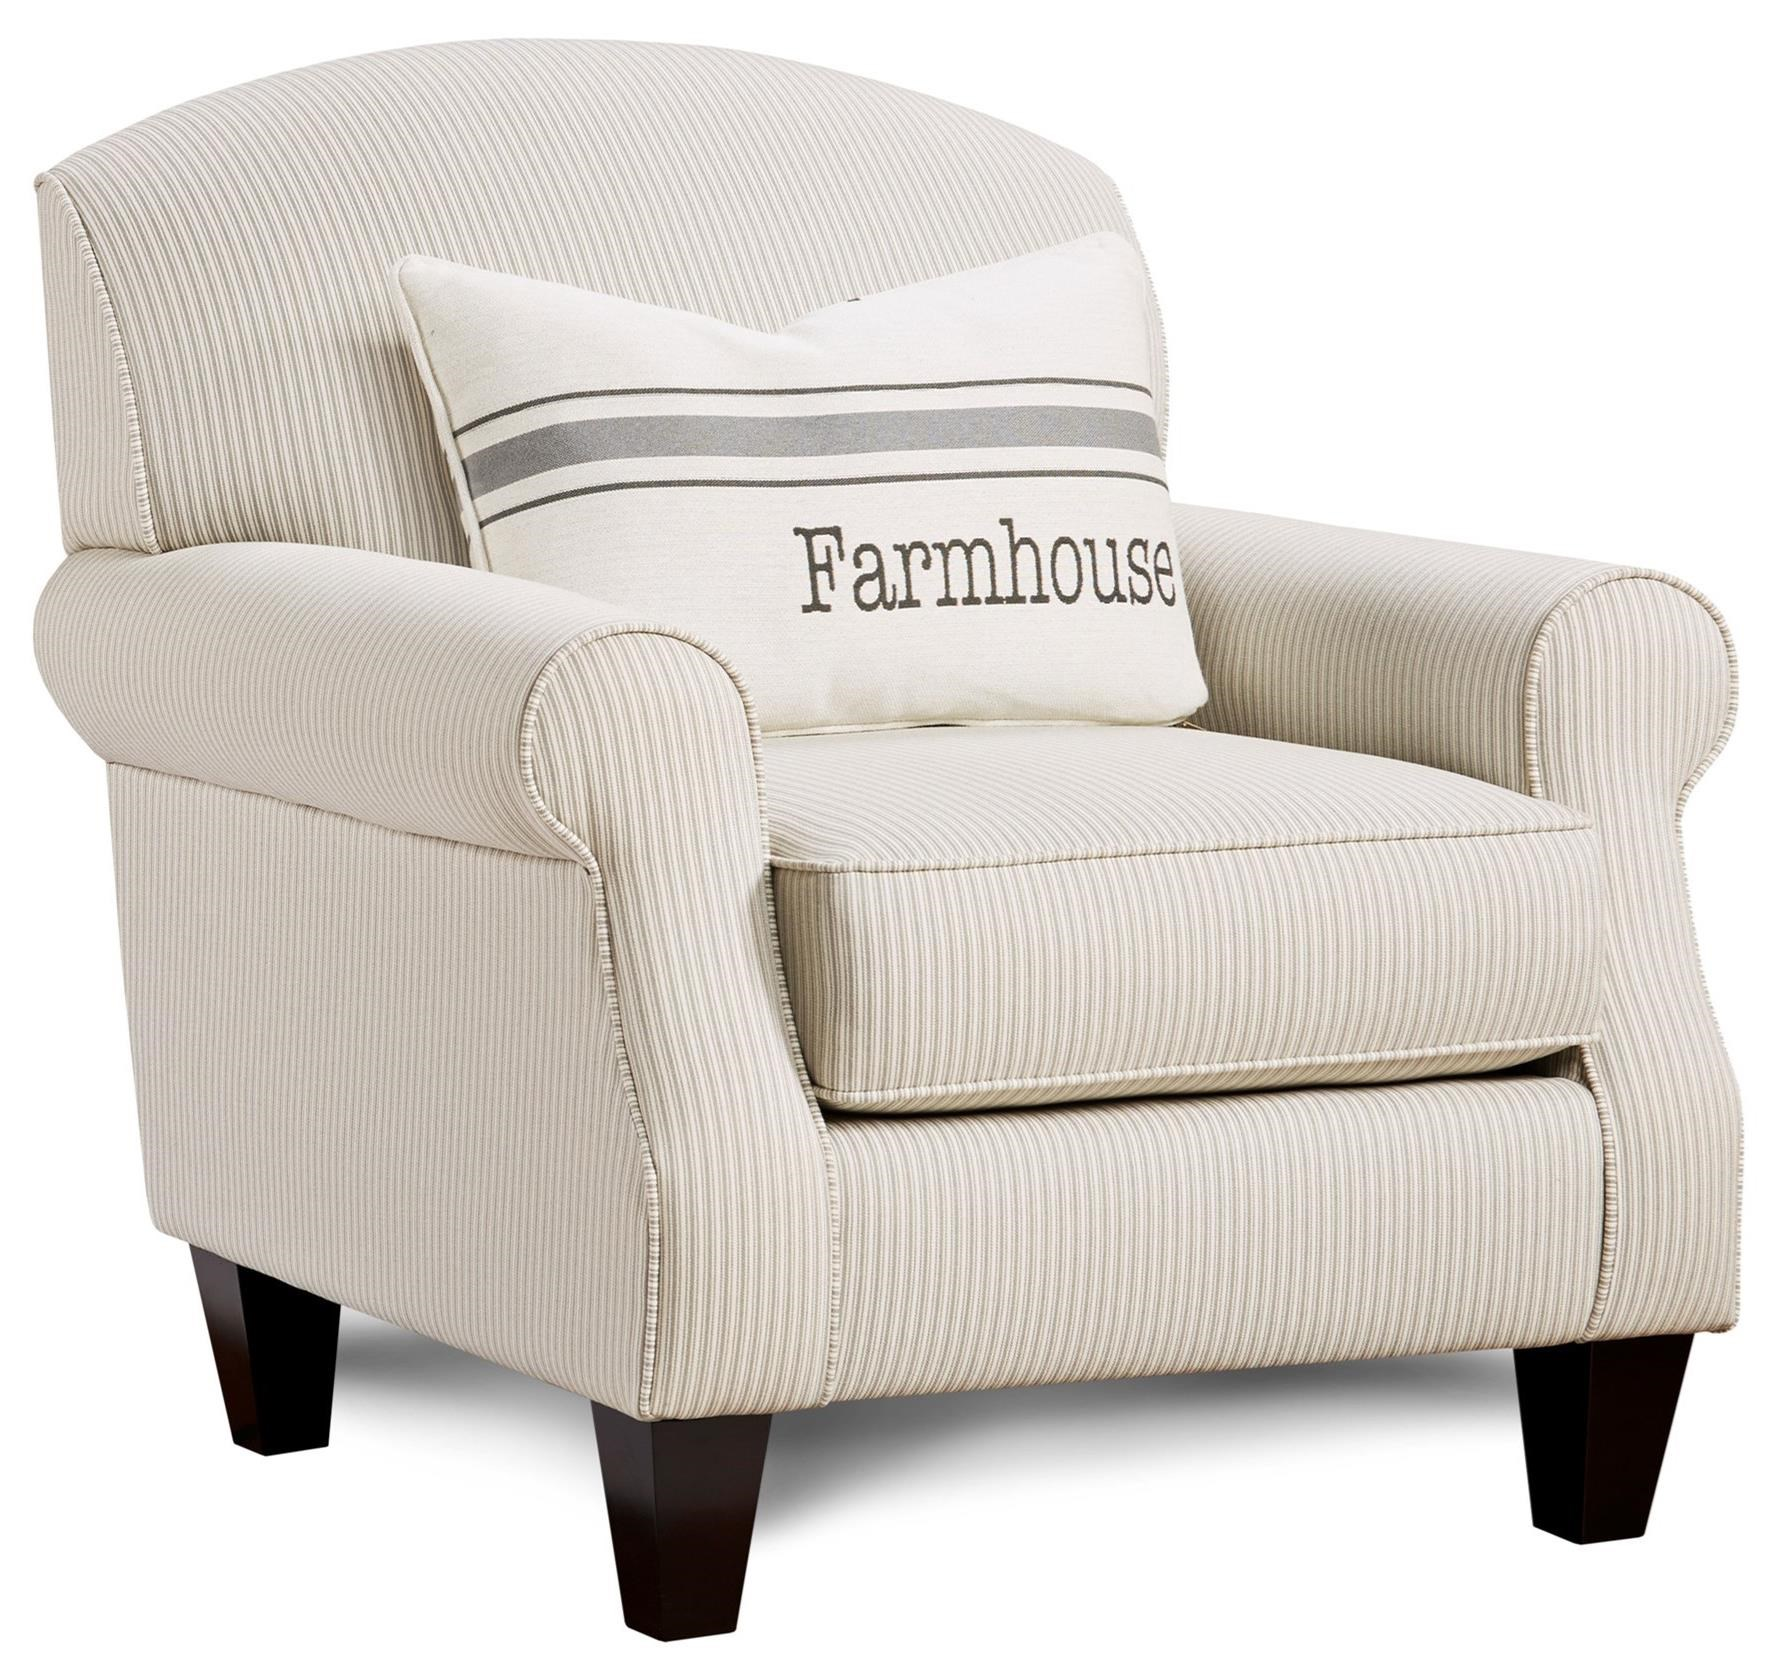 532 Accent Chair with Kidney Pillow by FN at Lindy's Furniture Company